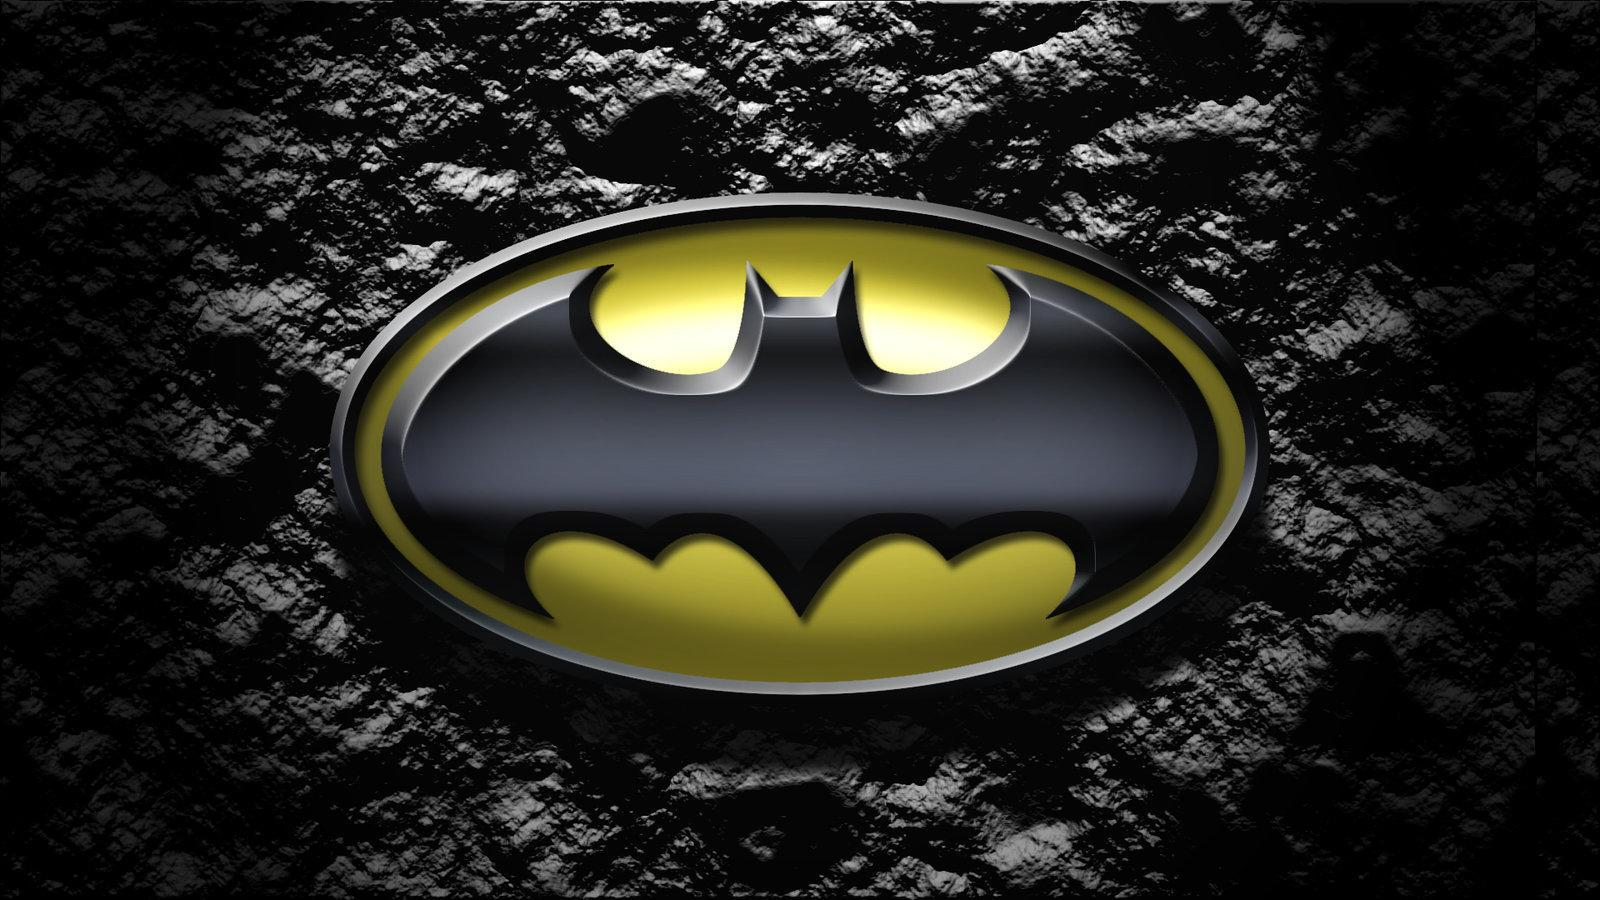 Who likes Batman?